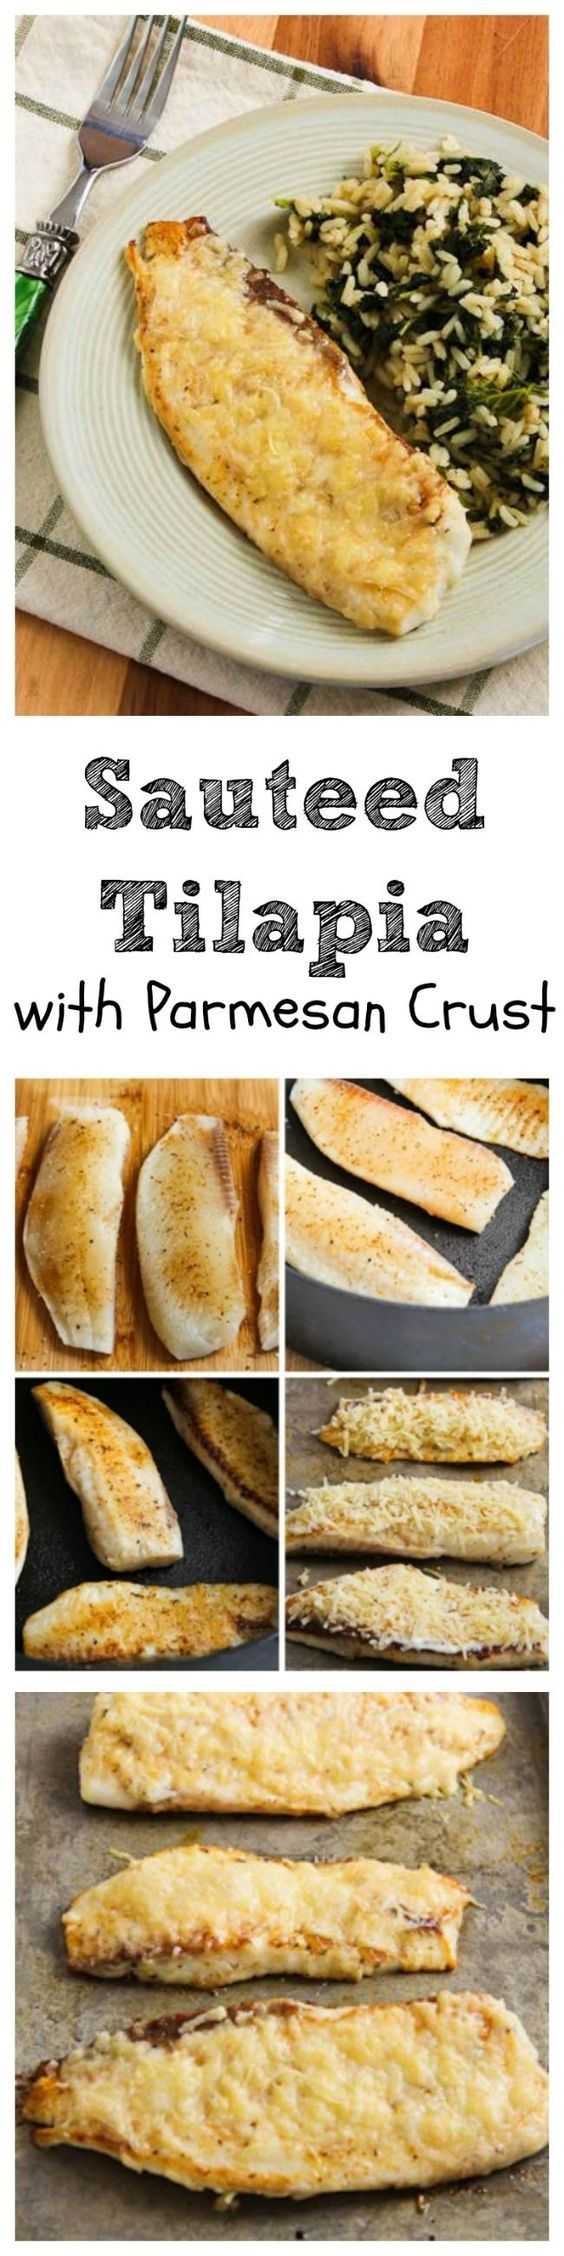 This easy and delicious Sauteed Tilapia with Parmesan Crust just might be the recipe that will get your family to enjoy fish!  And this healthy recipe is Low-Carb and Gluten-Free!  [from www.kalynskitchen.com]